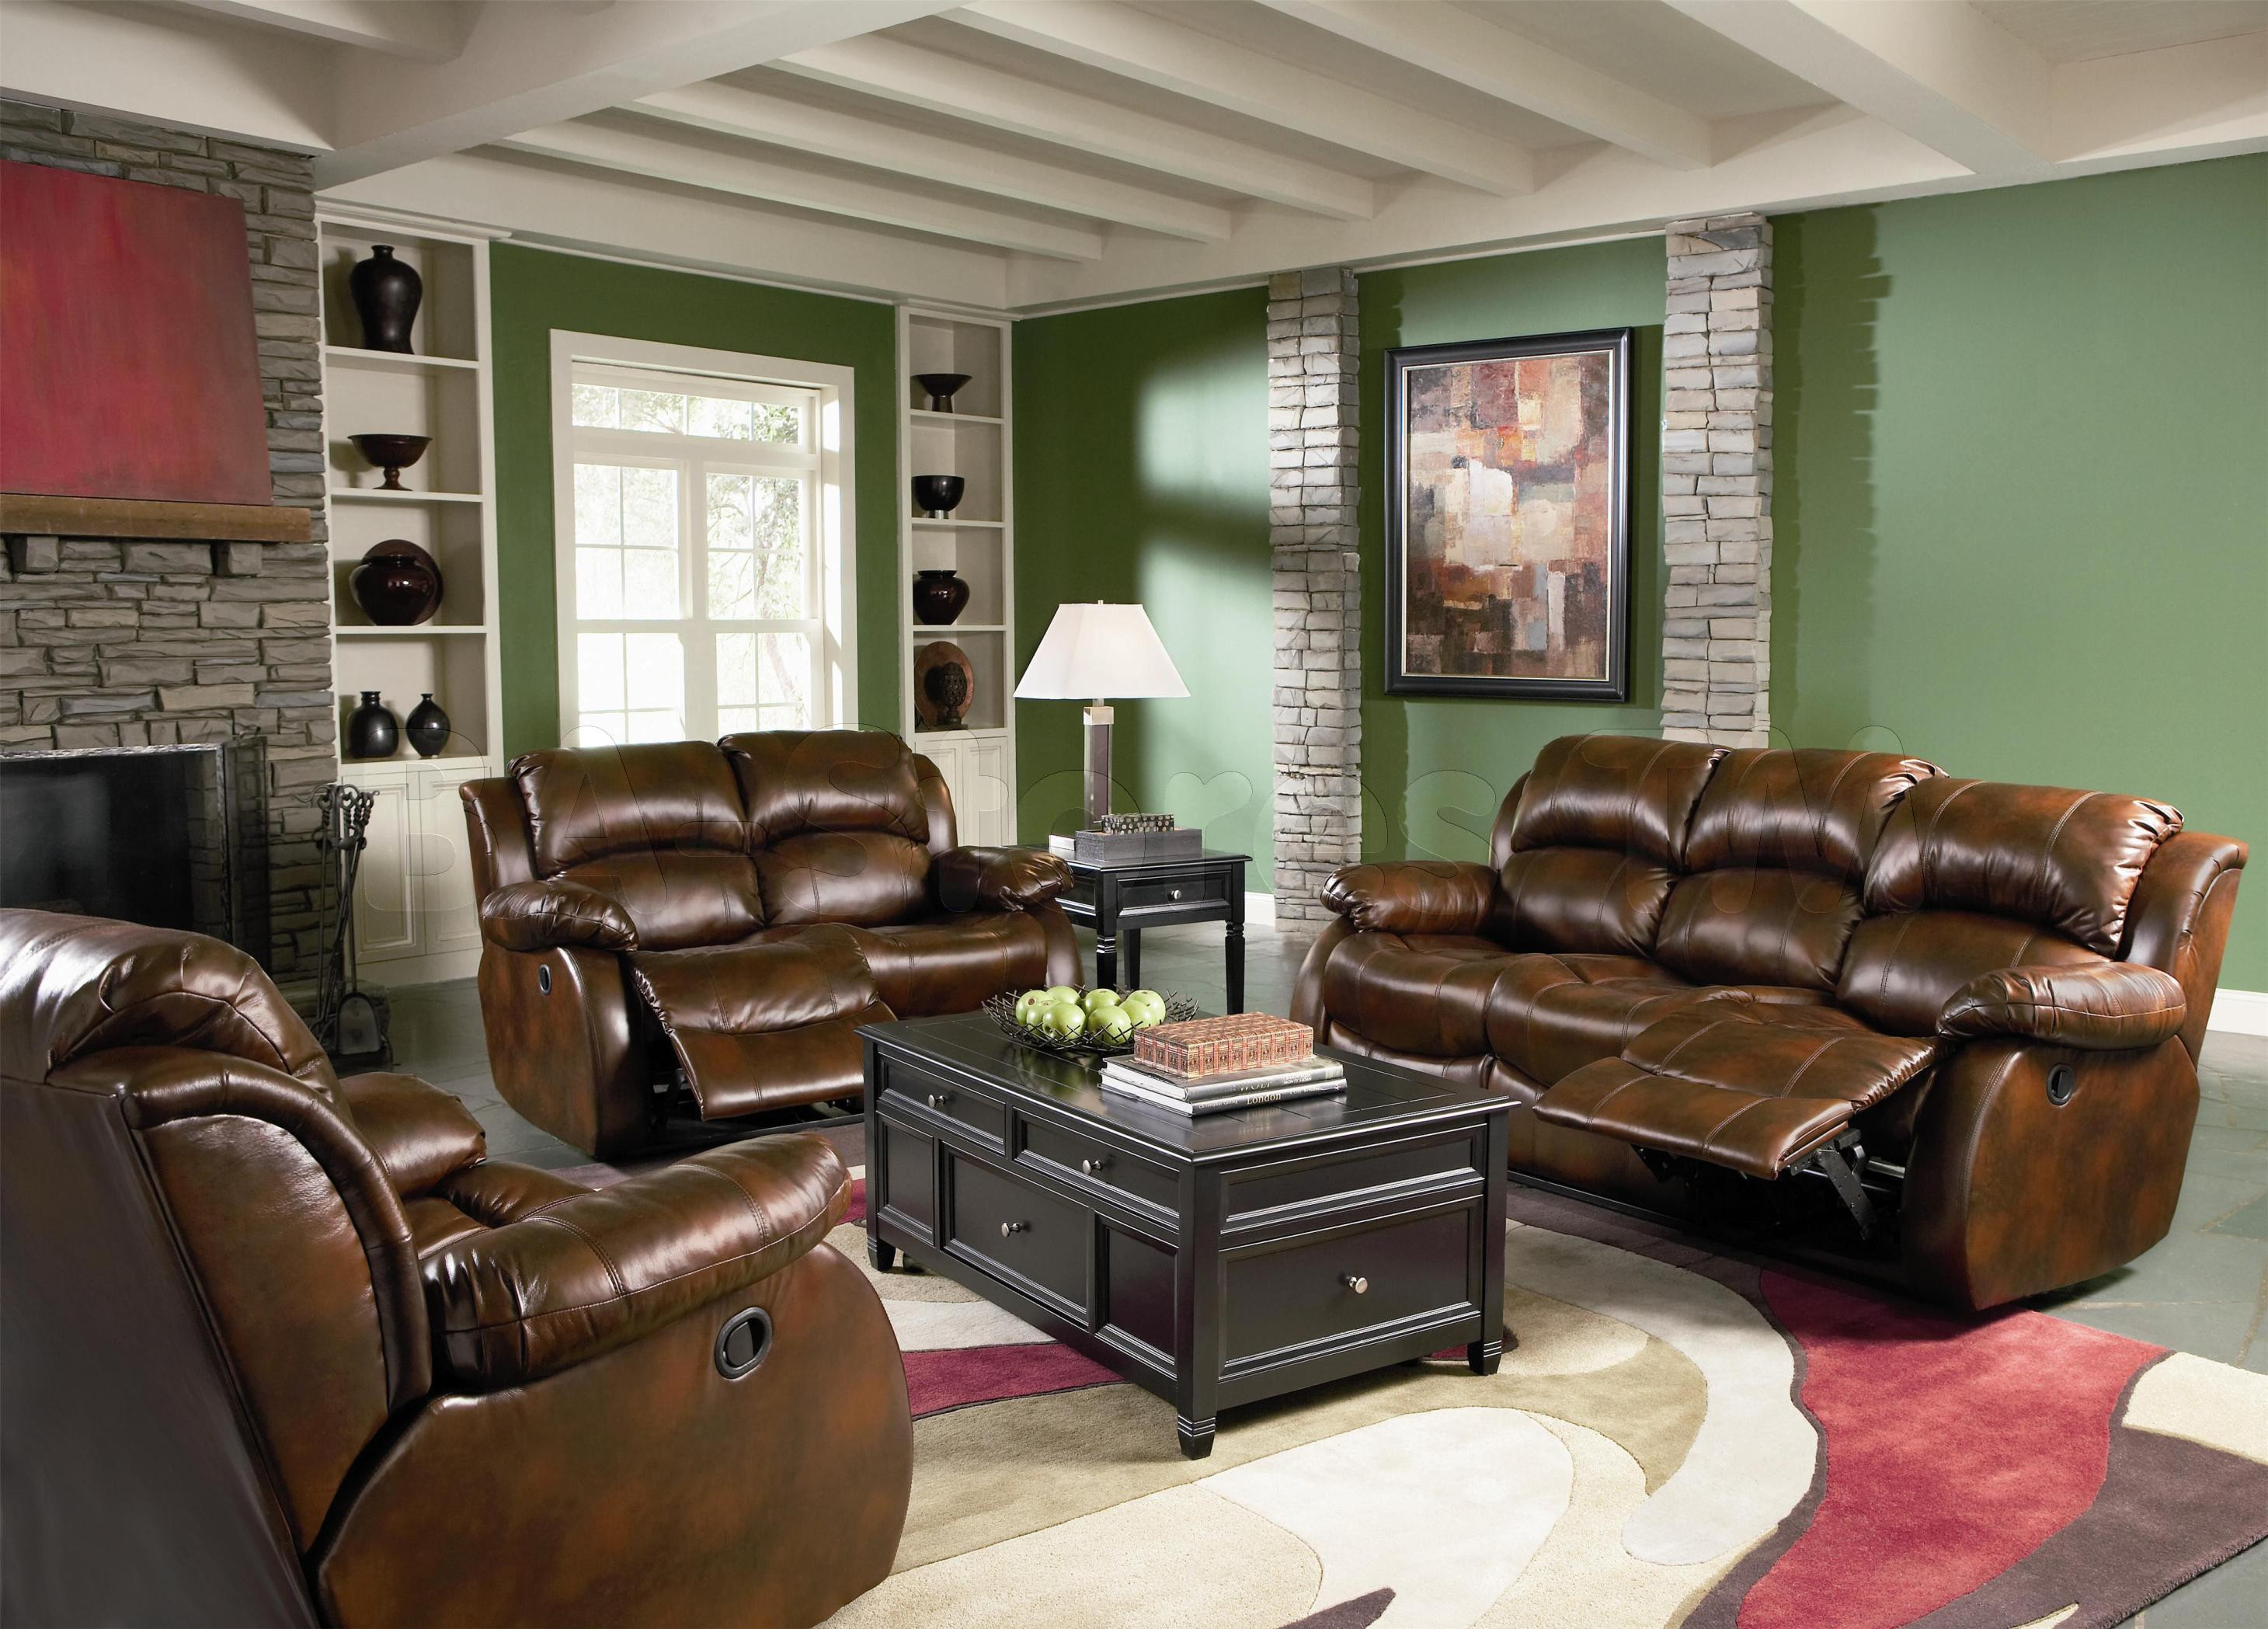 Best ideas about Sofa Set Designs For Small Living Room . Save or Pin Living Room fortable Living Room Sofas Design With Now.